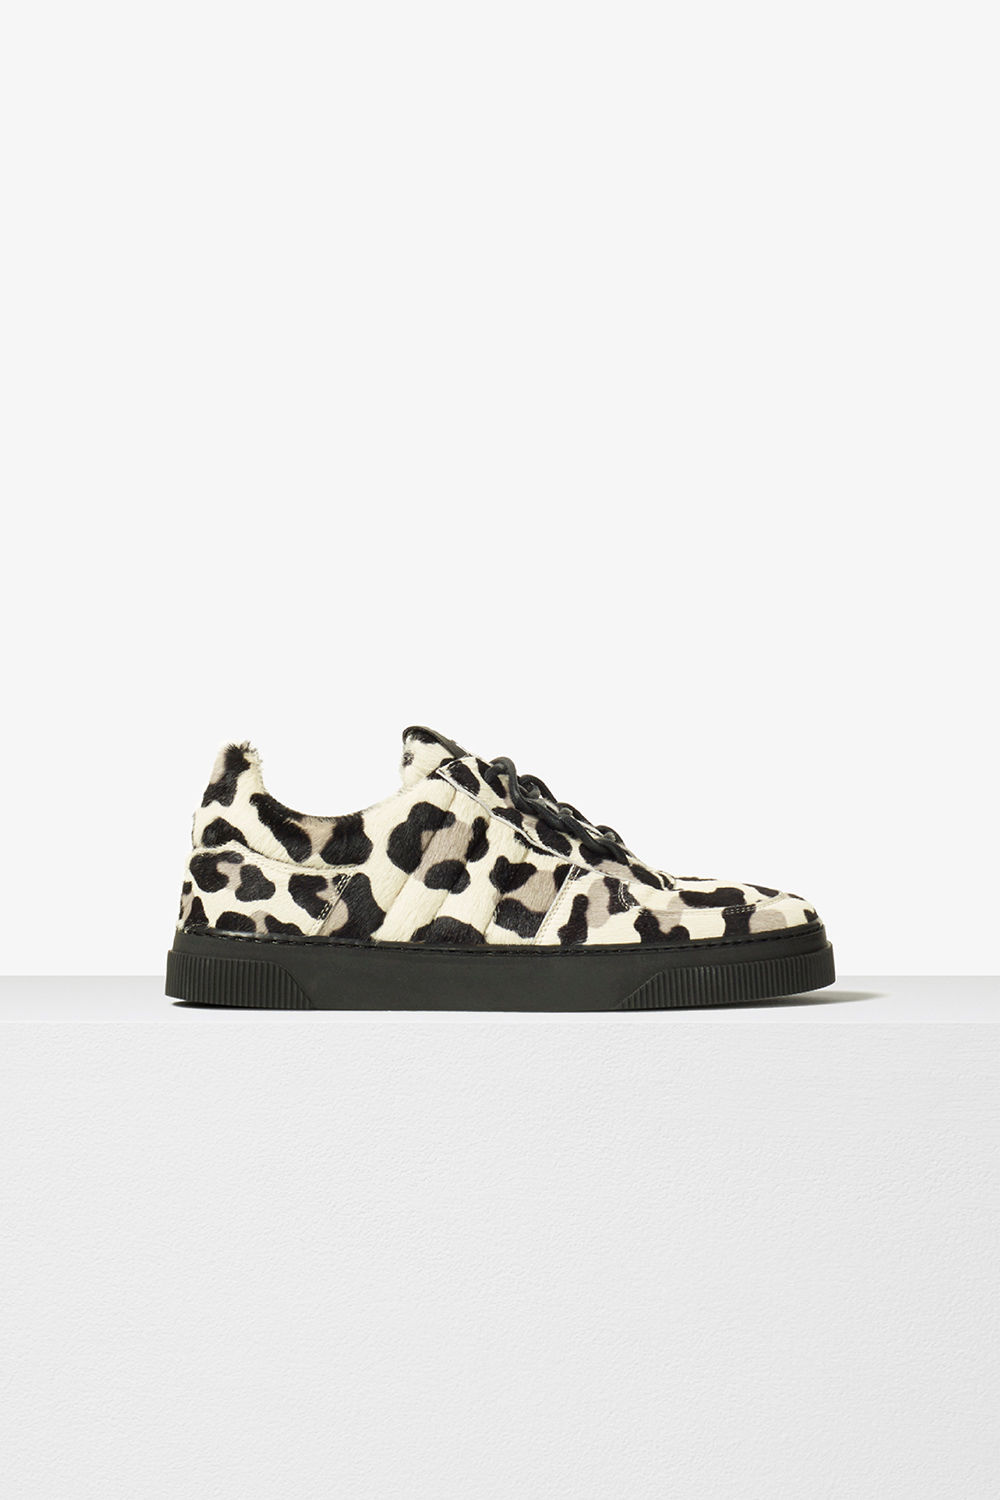 proenza schouler pre fall 2017 clay leopard calf hair leather lace up sneaker